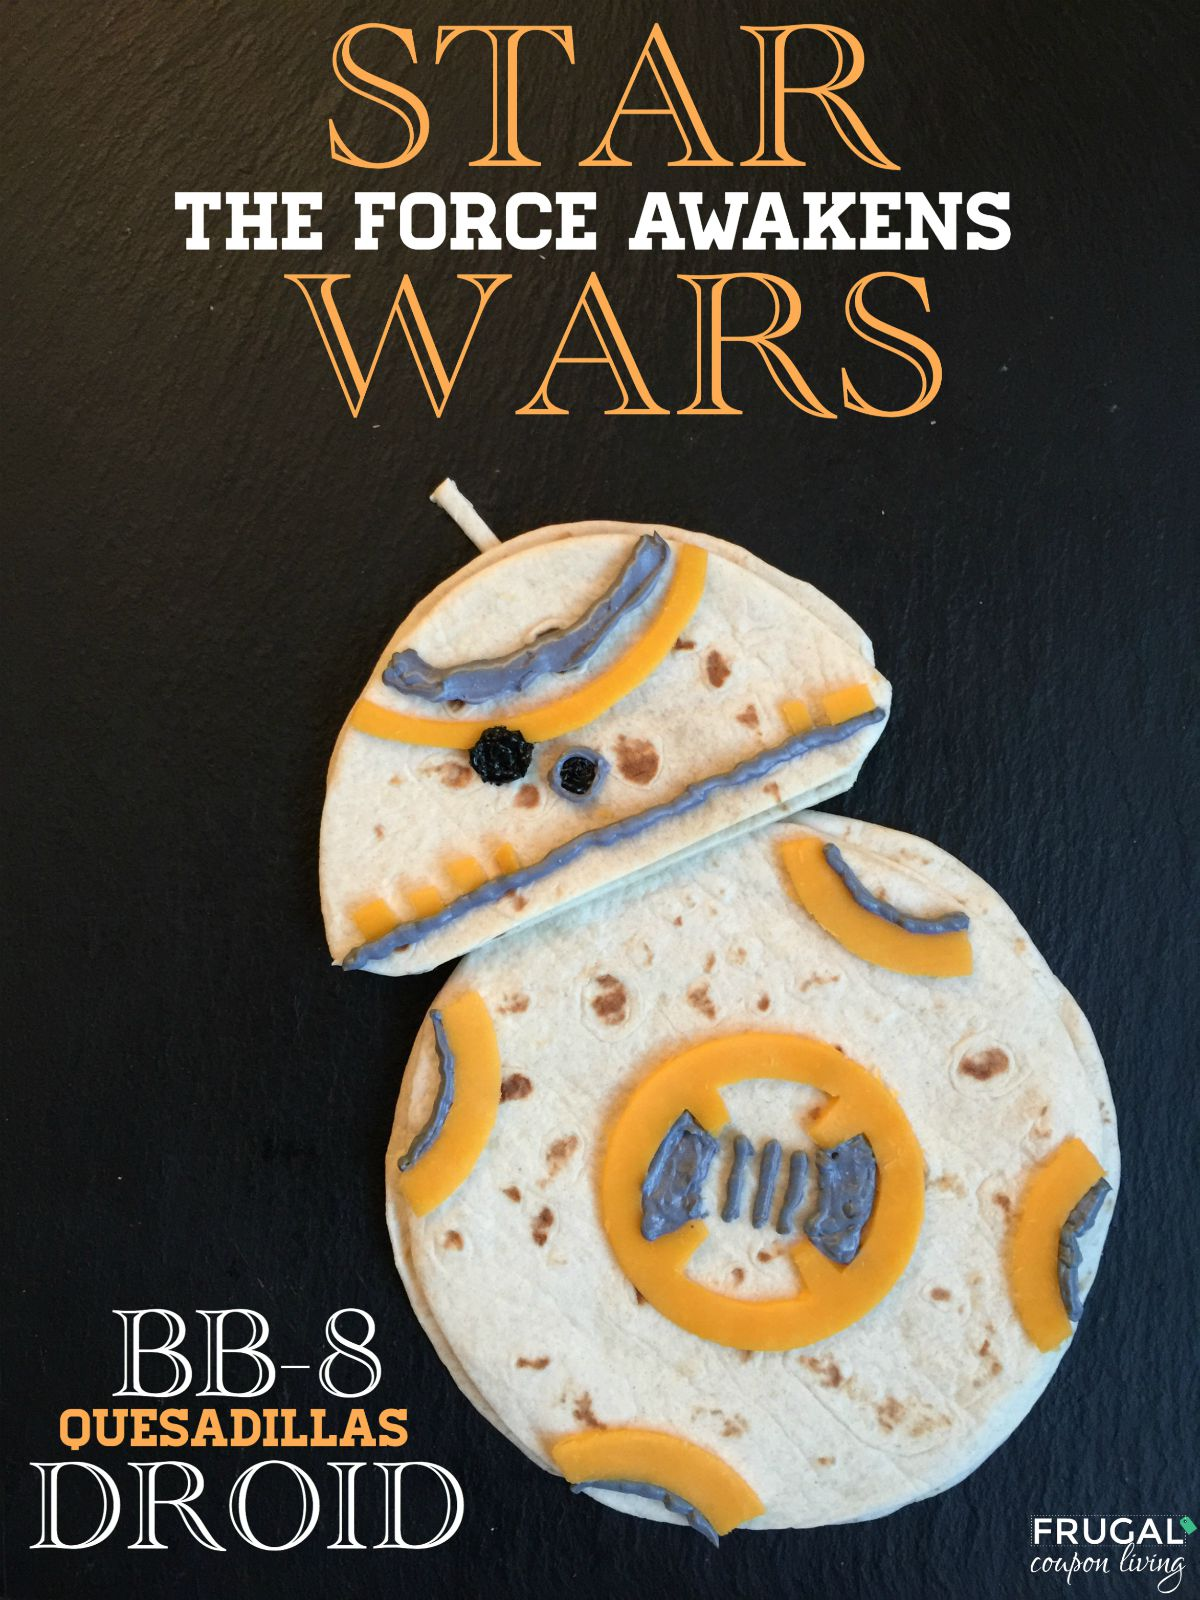 Star Wars Droid Quesadillas on Frugal Coupon Living